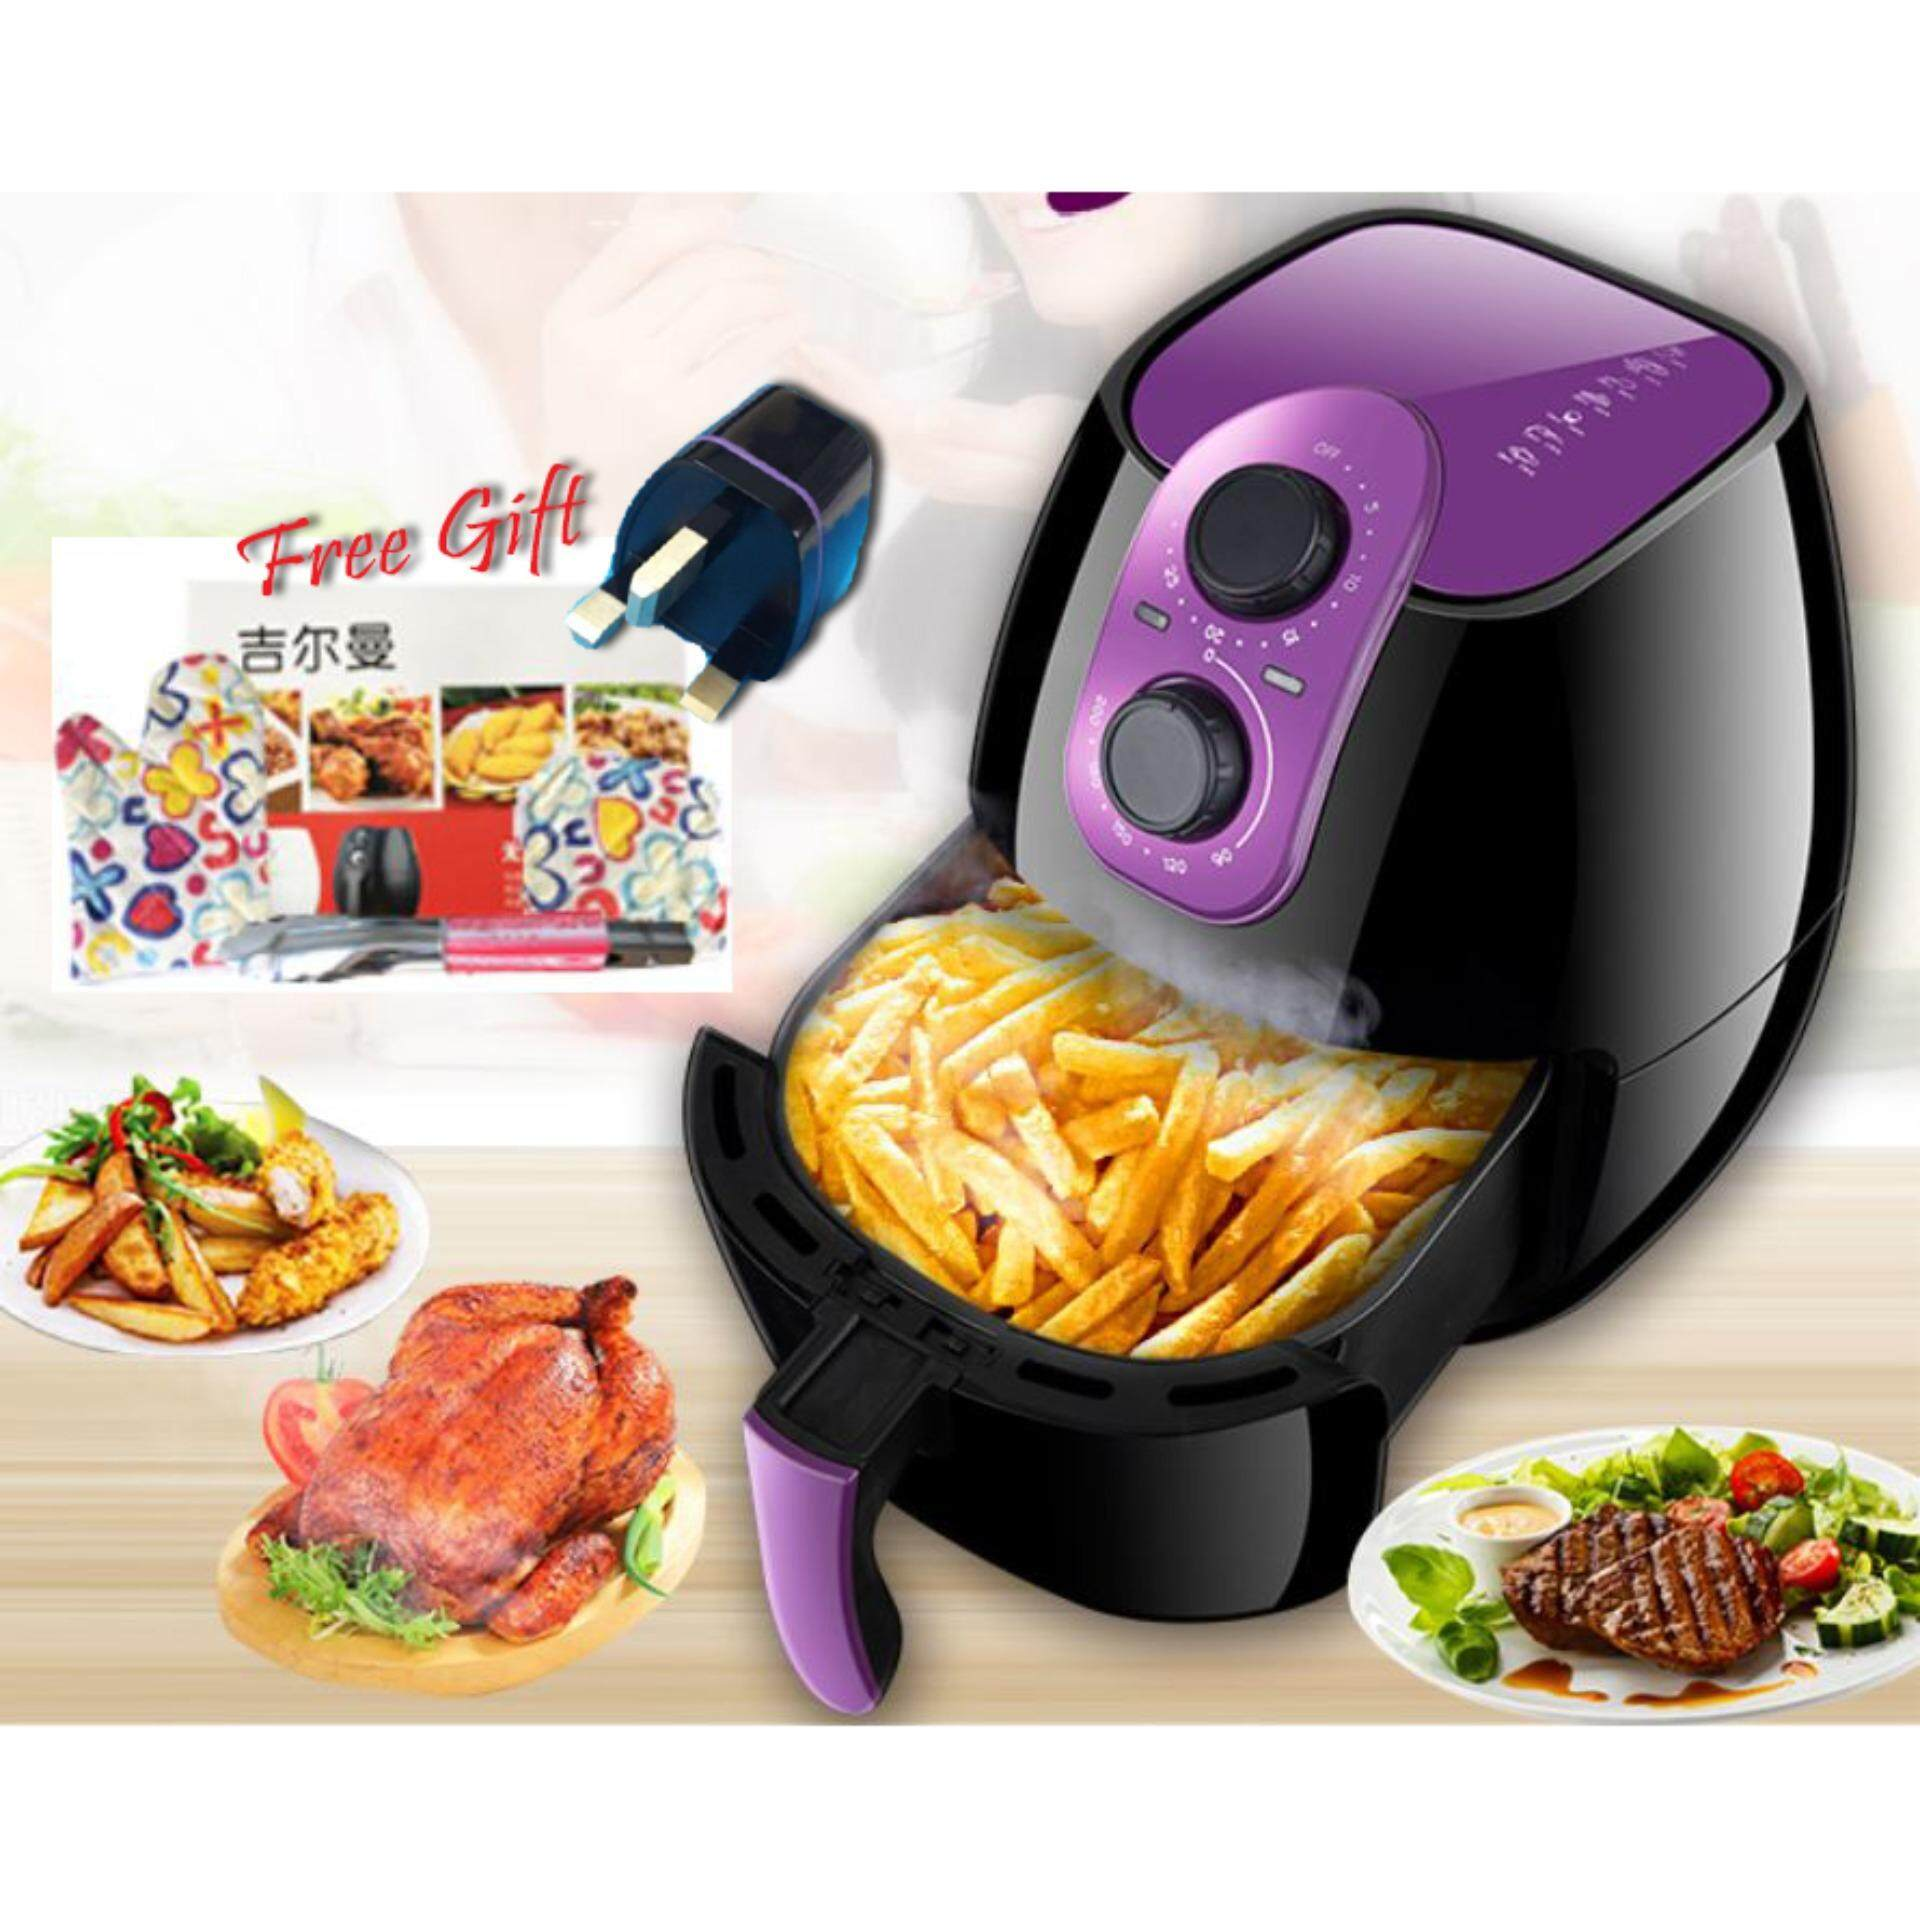 Giman 4l High Capacity Air Fryer (ak-8005) + Free Gift By Lp Kong Forever Lifestyle.